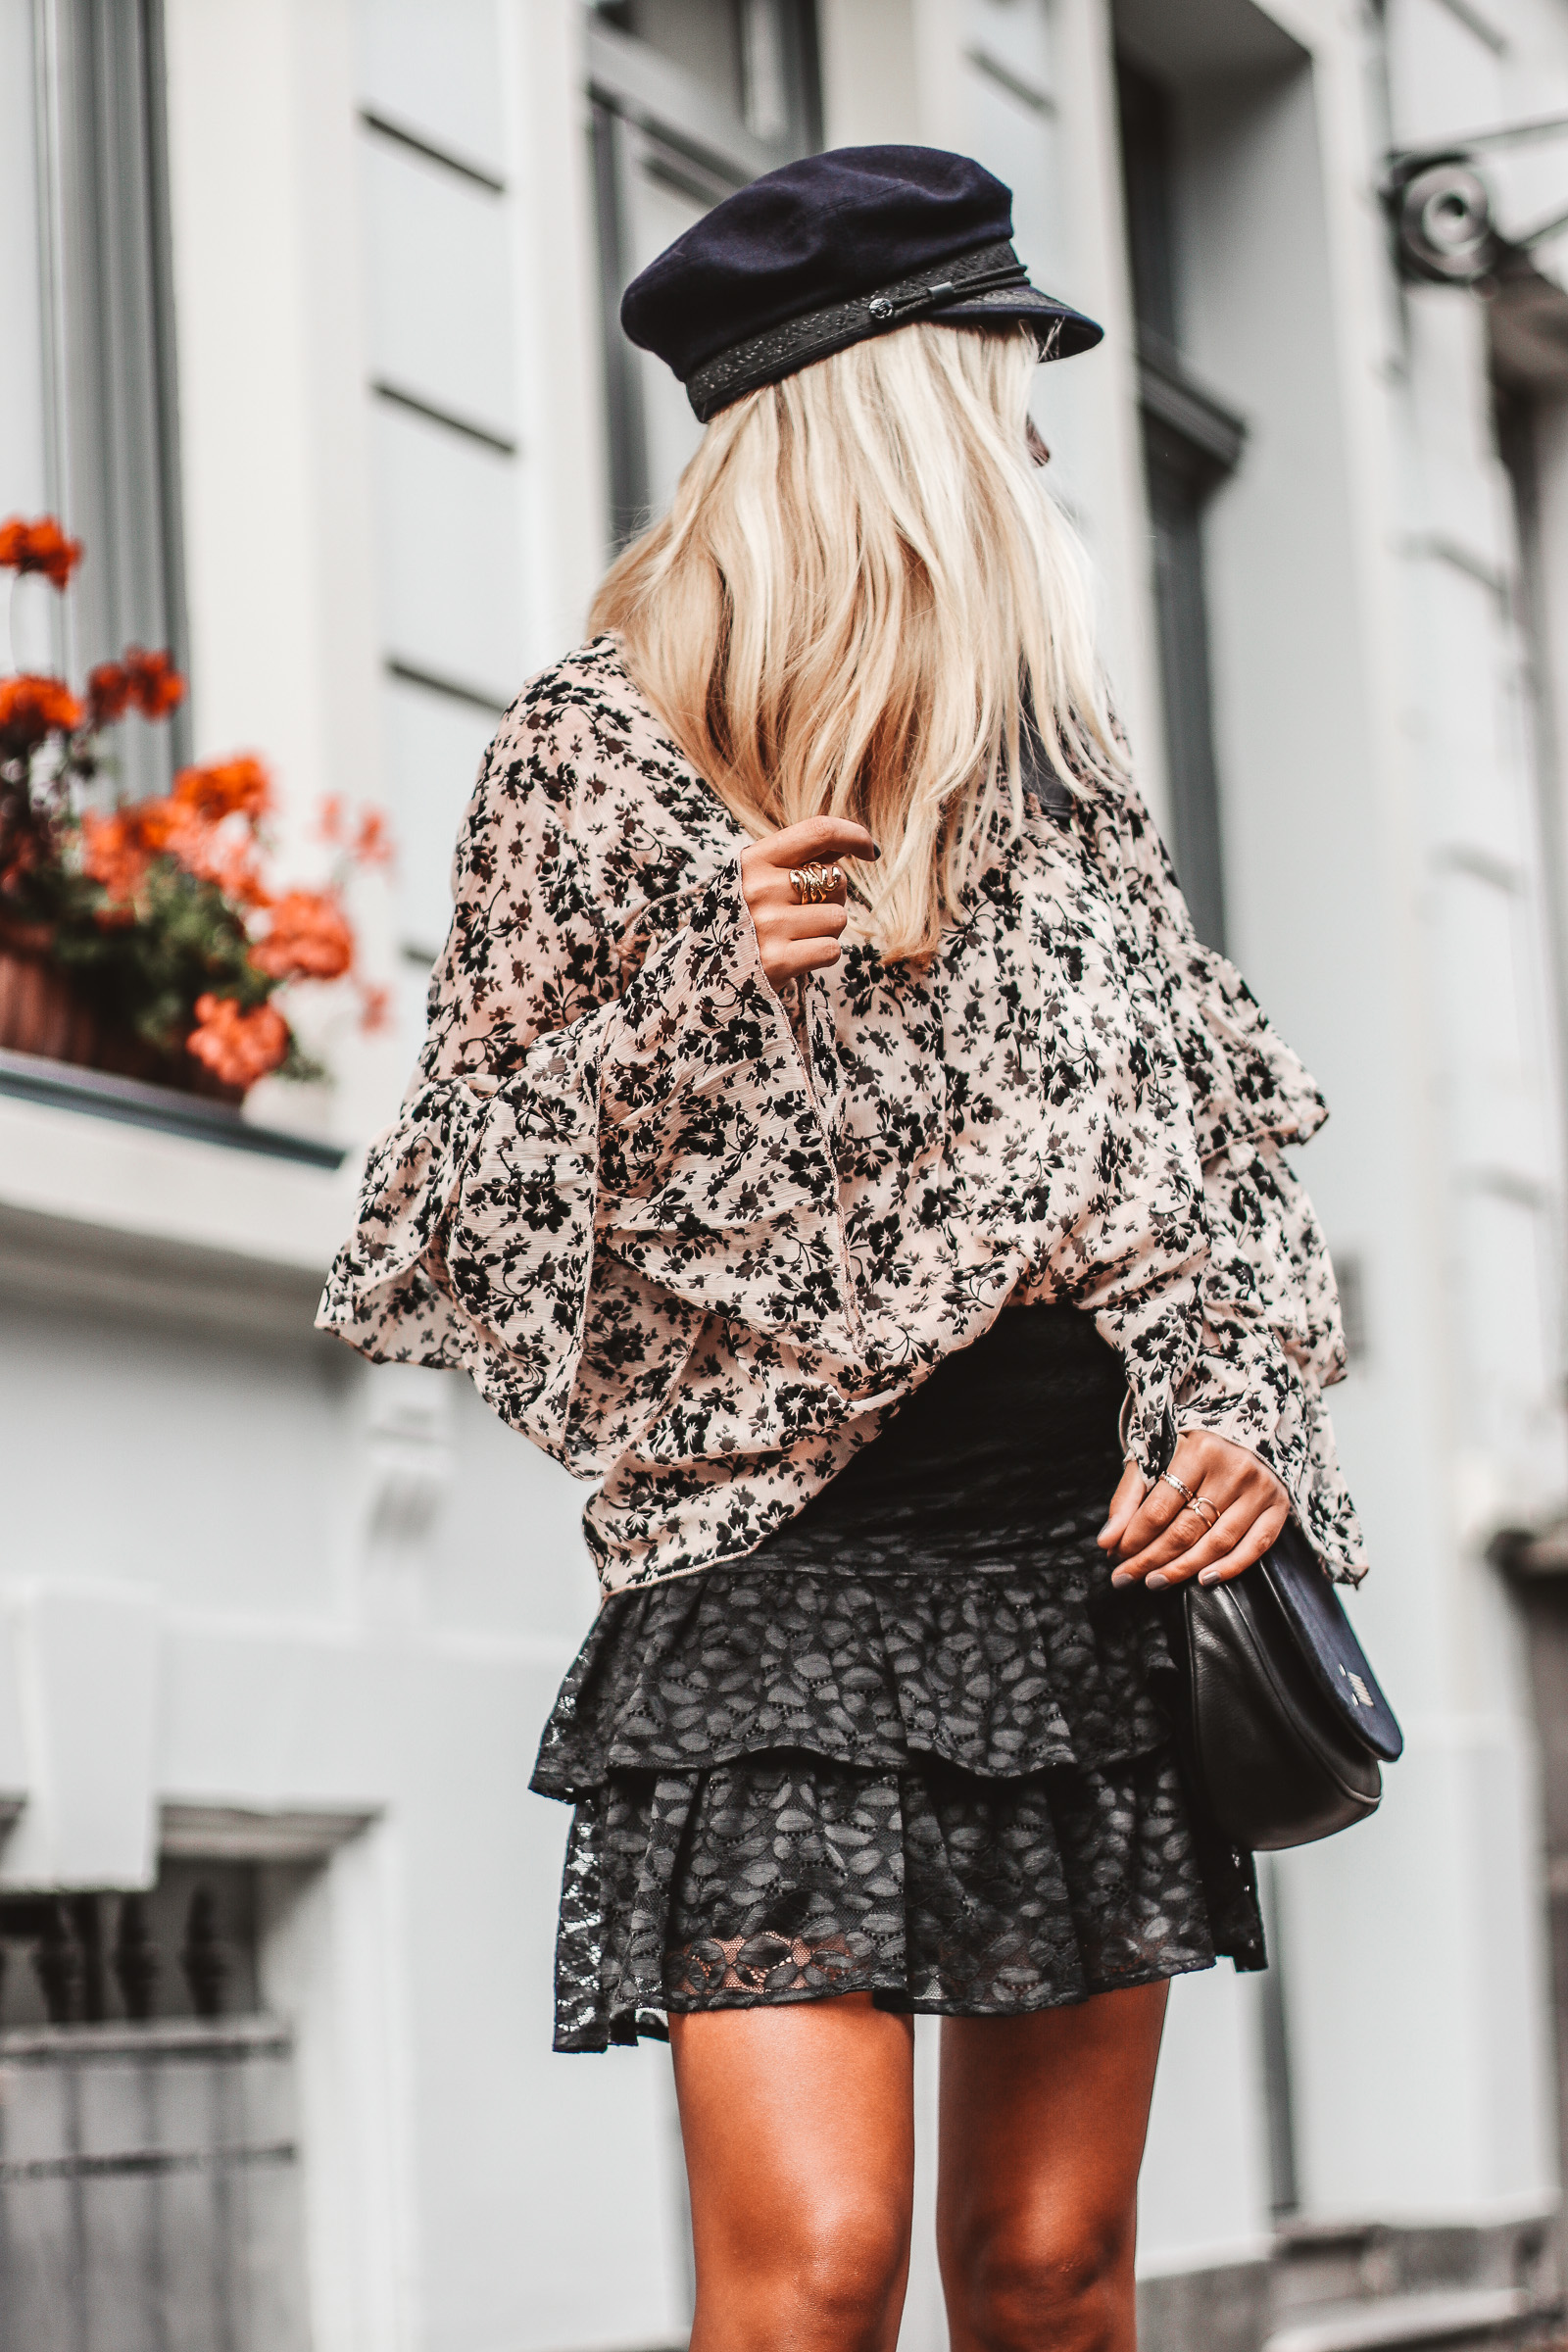 Fall outfit // Fashion blogger